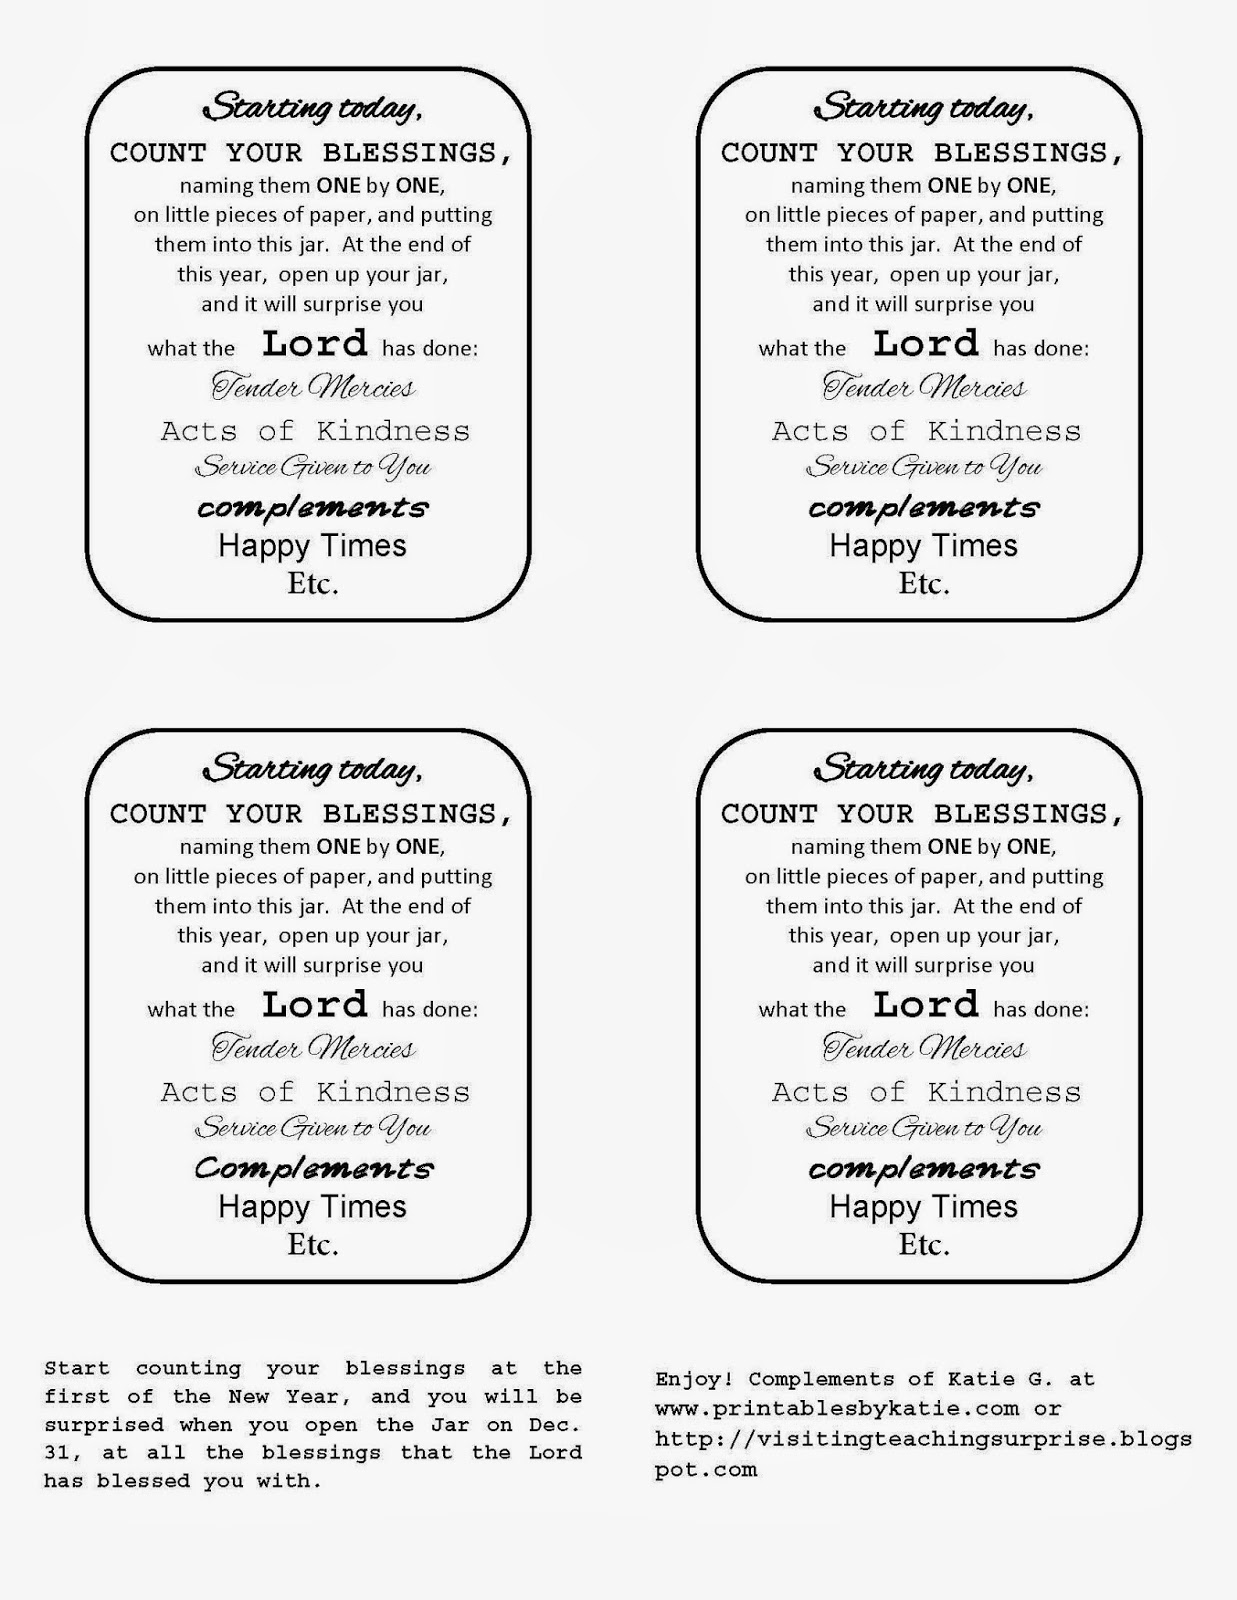 Visiting Teaching Surprise Count Your Blessings Jar Labels